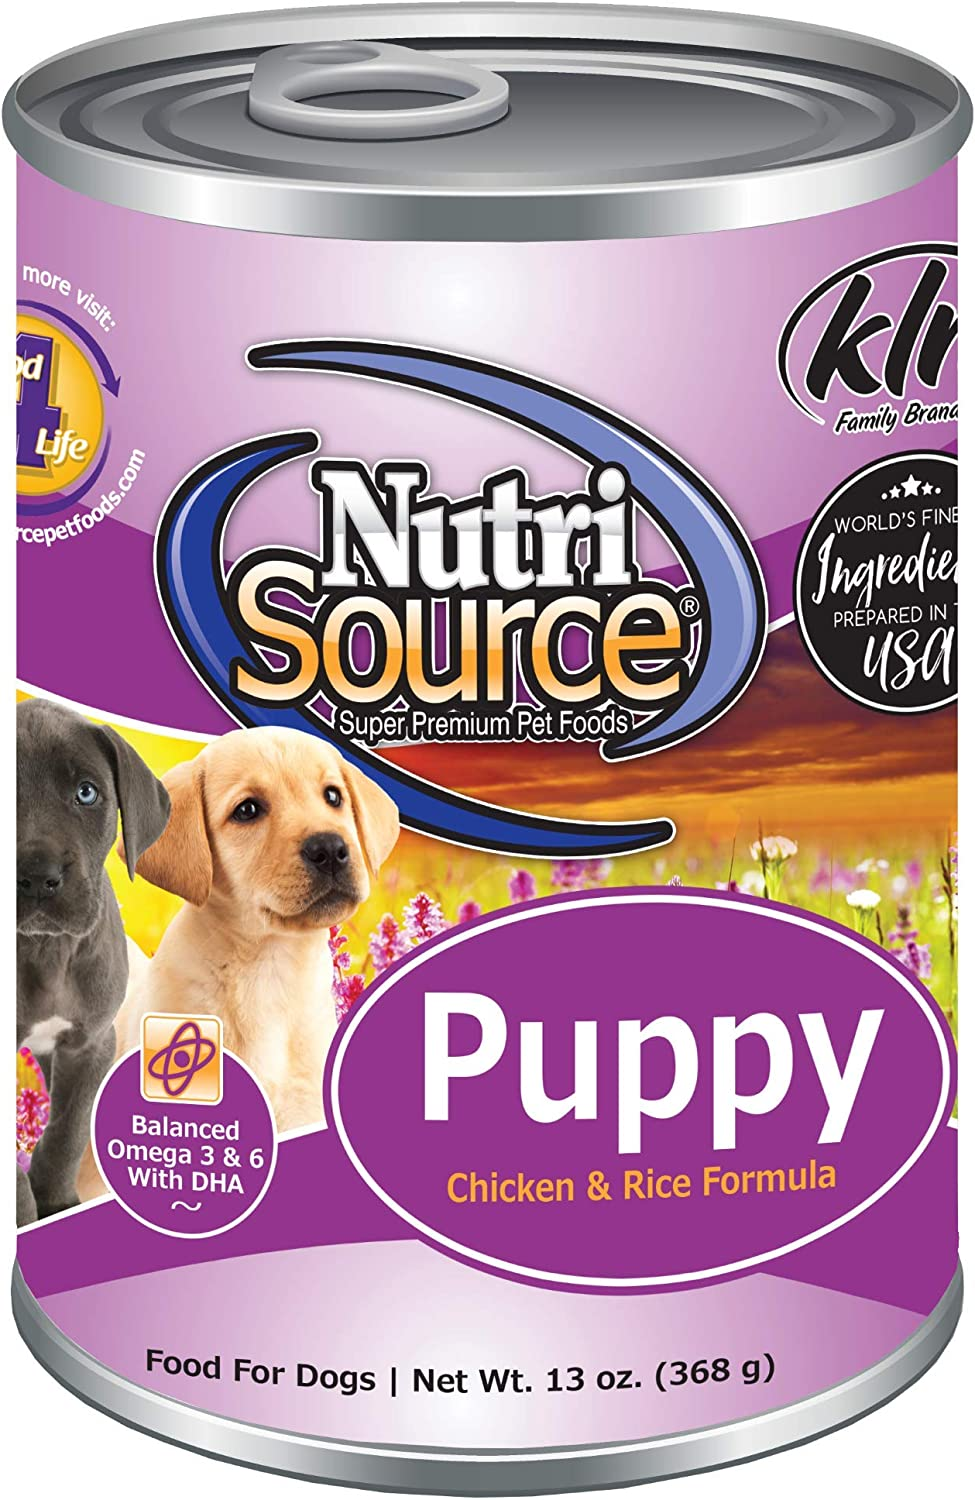 Nutri Source Puppy Chicken & Rice Case of Canned Dog Food 12/13oz